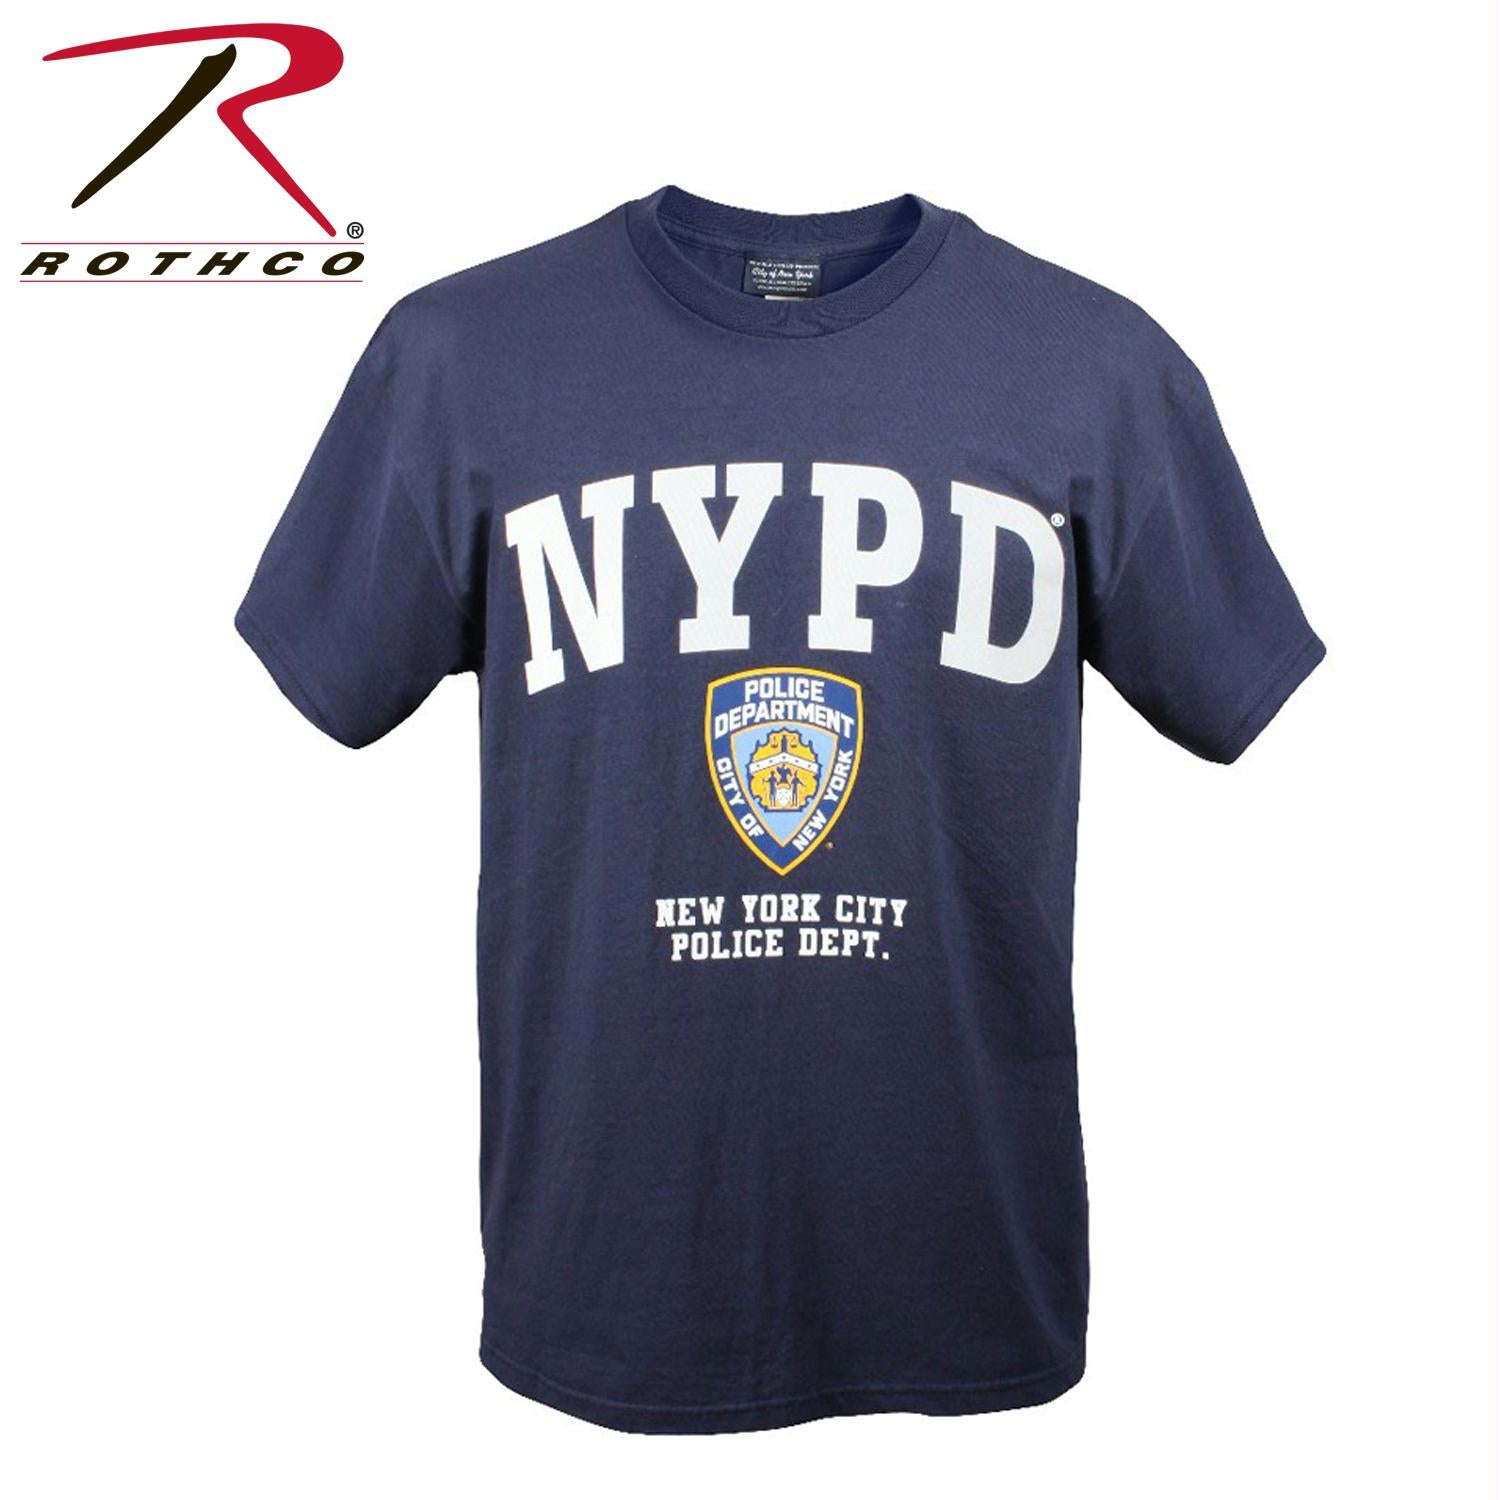 Officially Licensed NYPD T-shirt - L